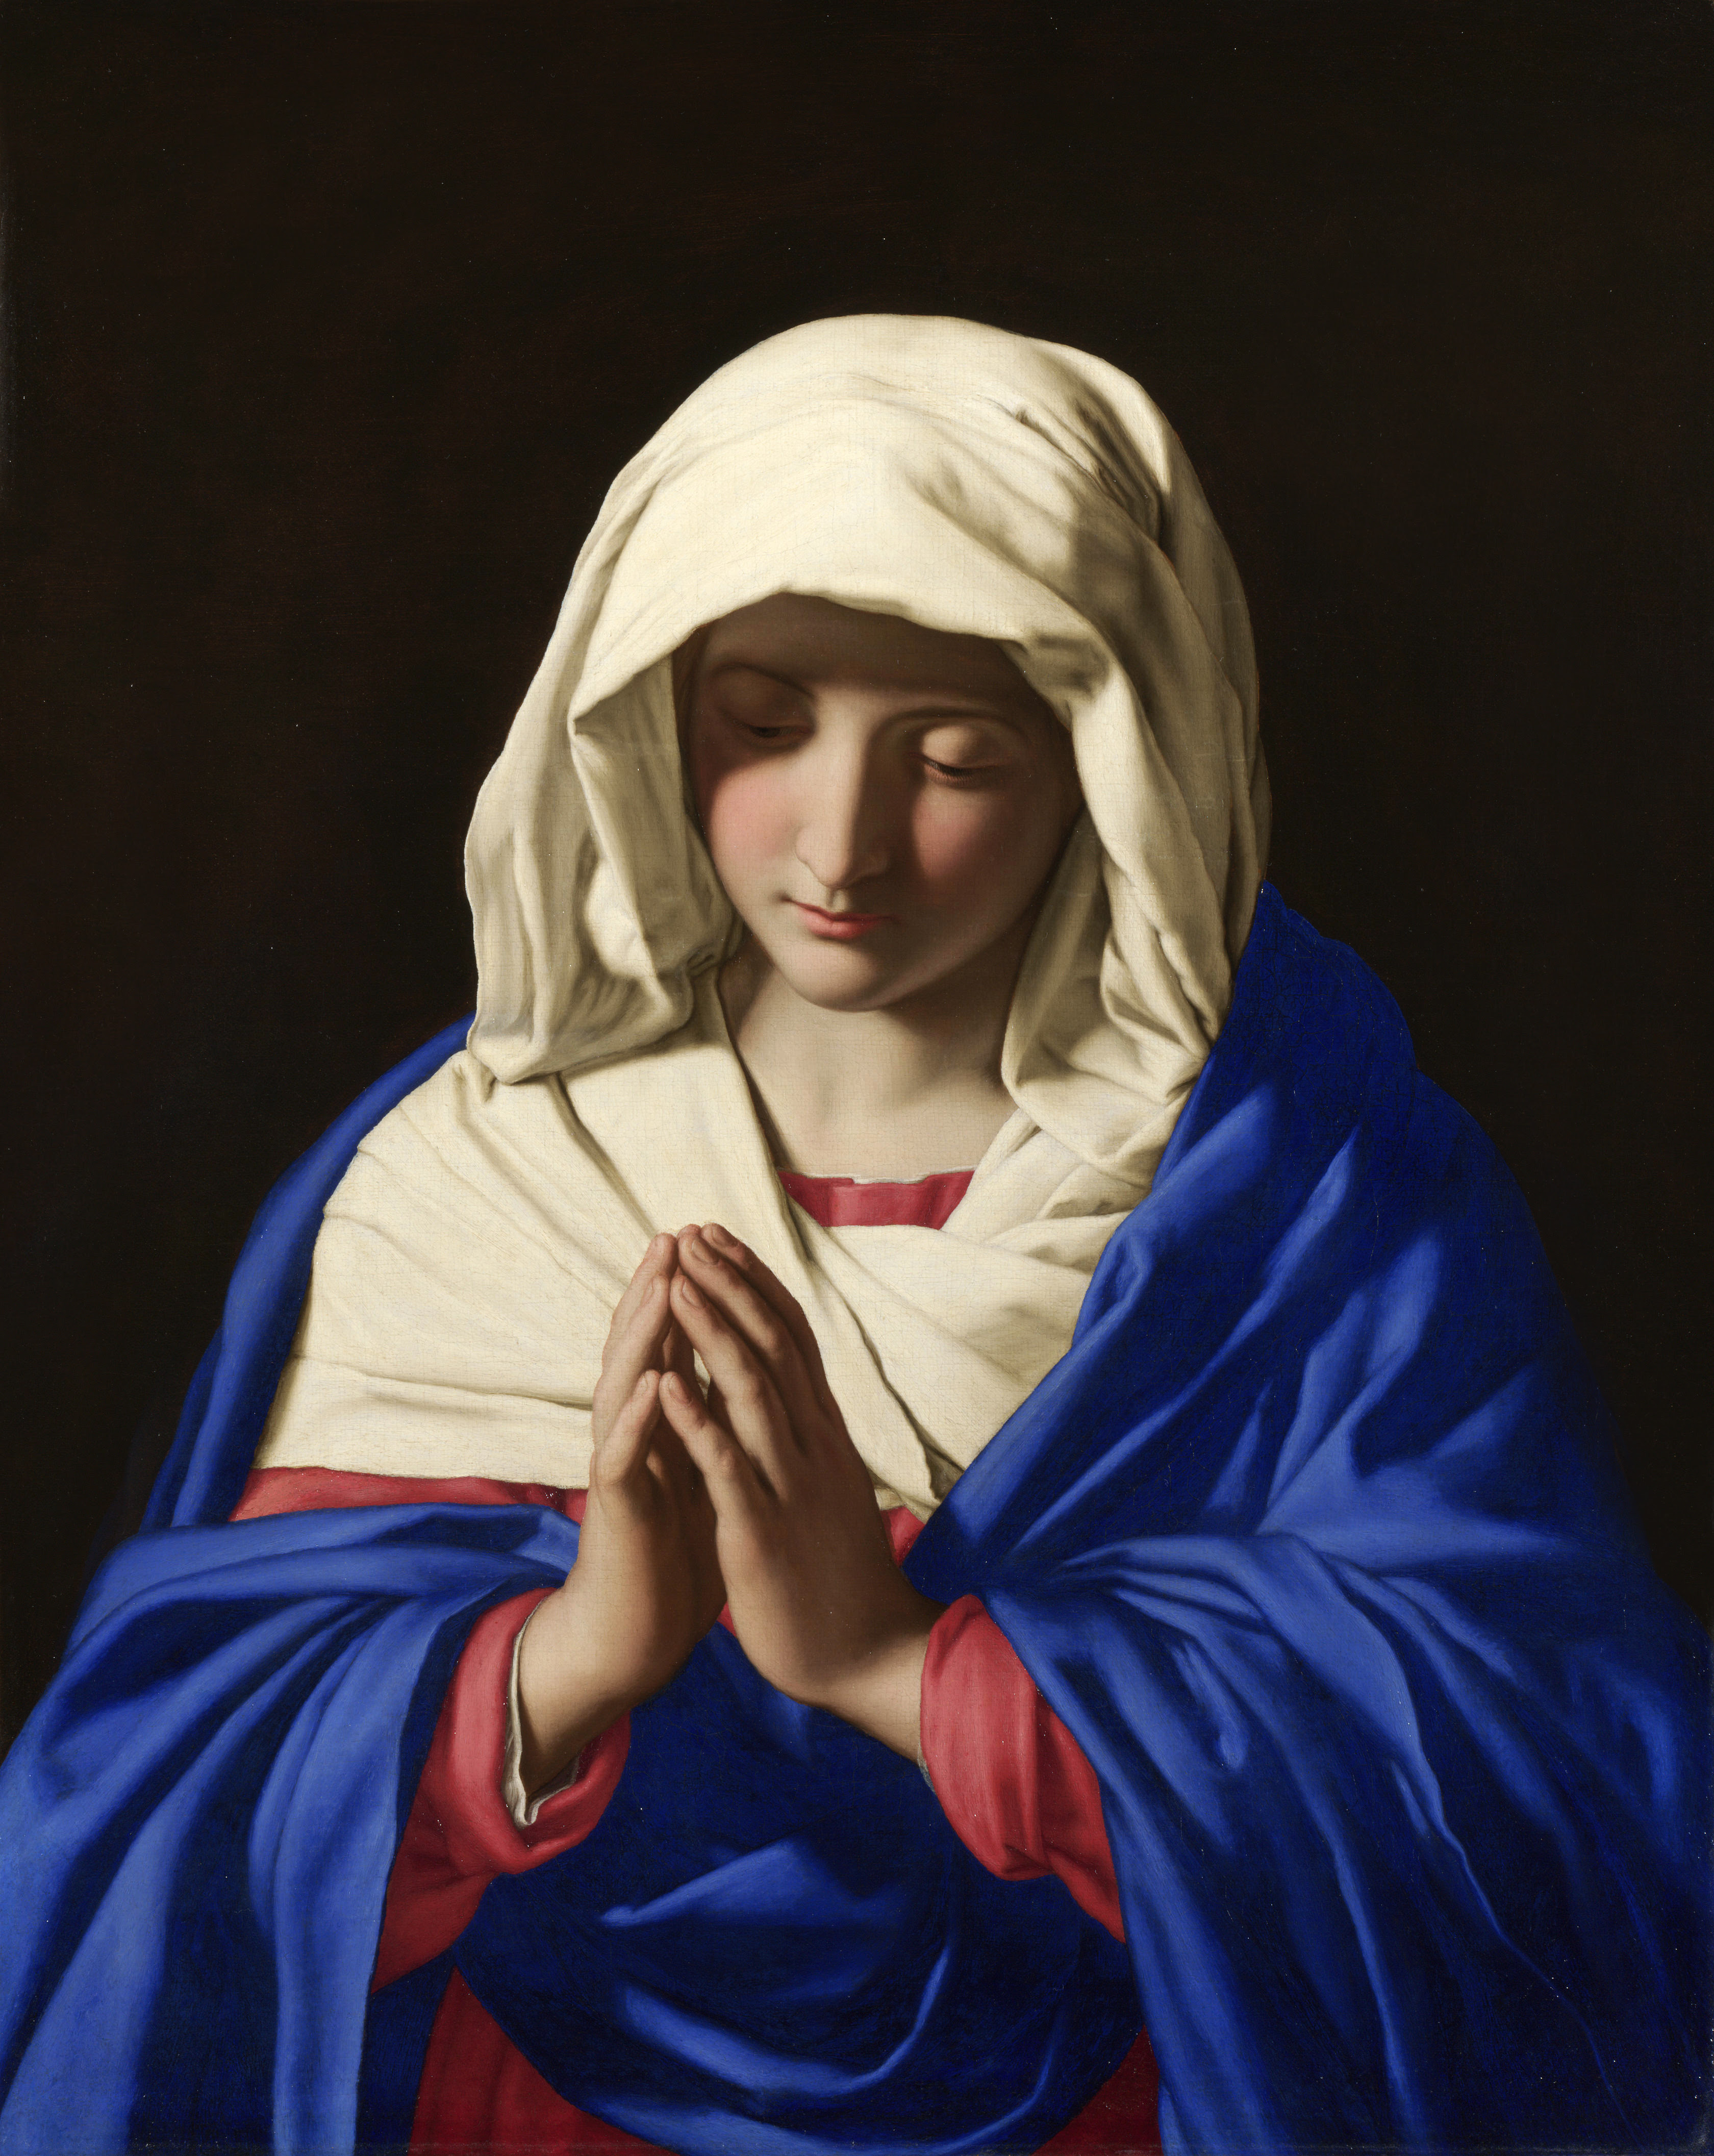 Hail Mary, full of grace, the Lord is with thee!